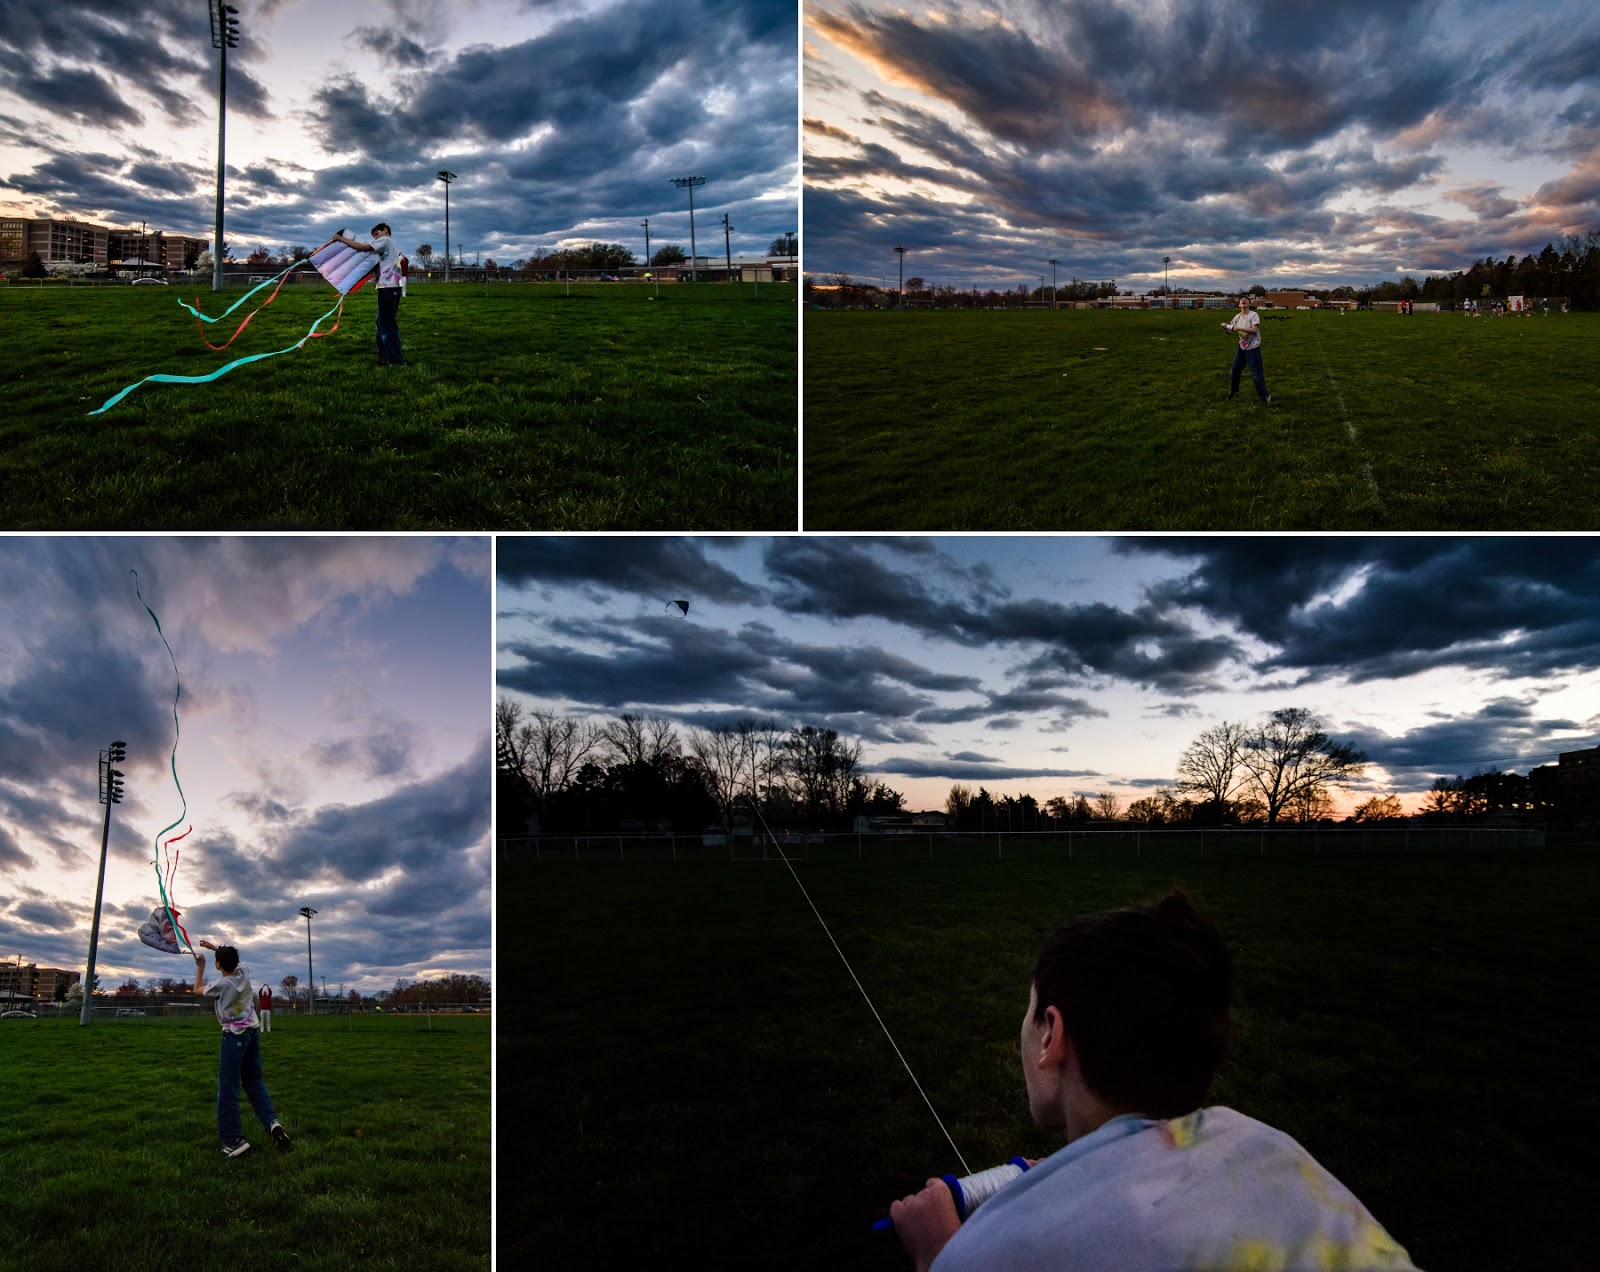 Flying kite at sunset in Northern Virginia park © Diana Sherblom Photography